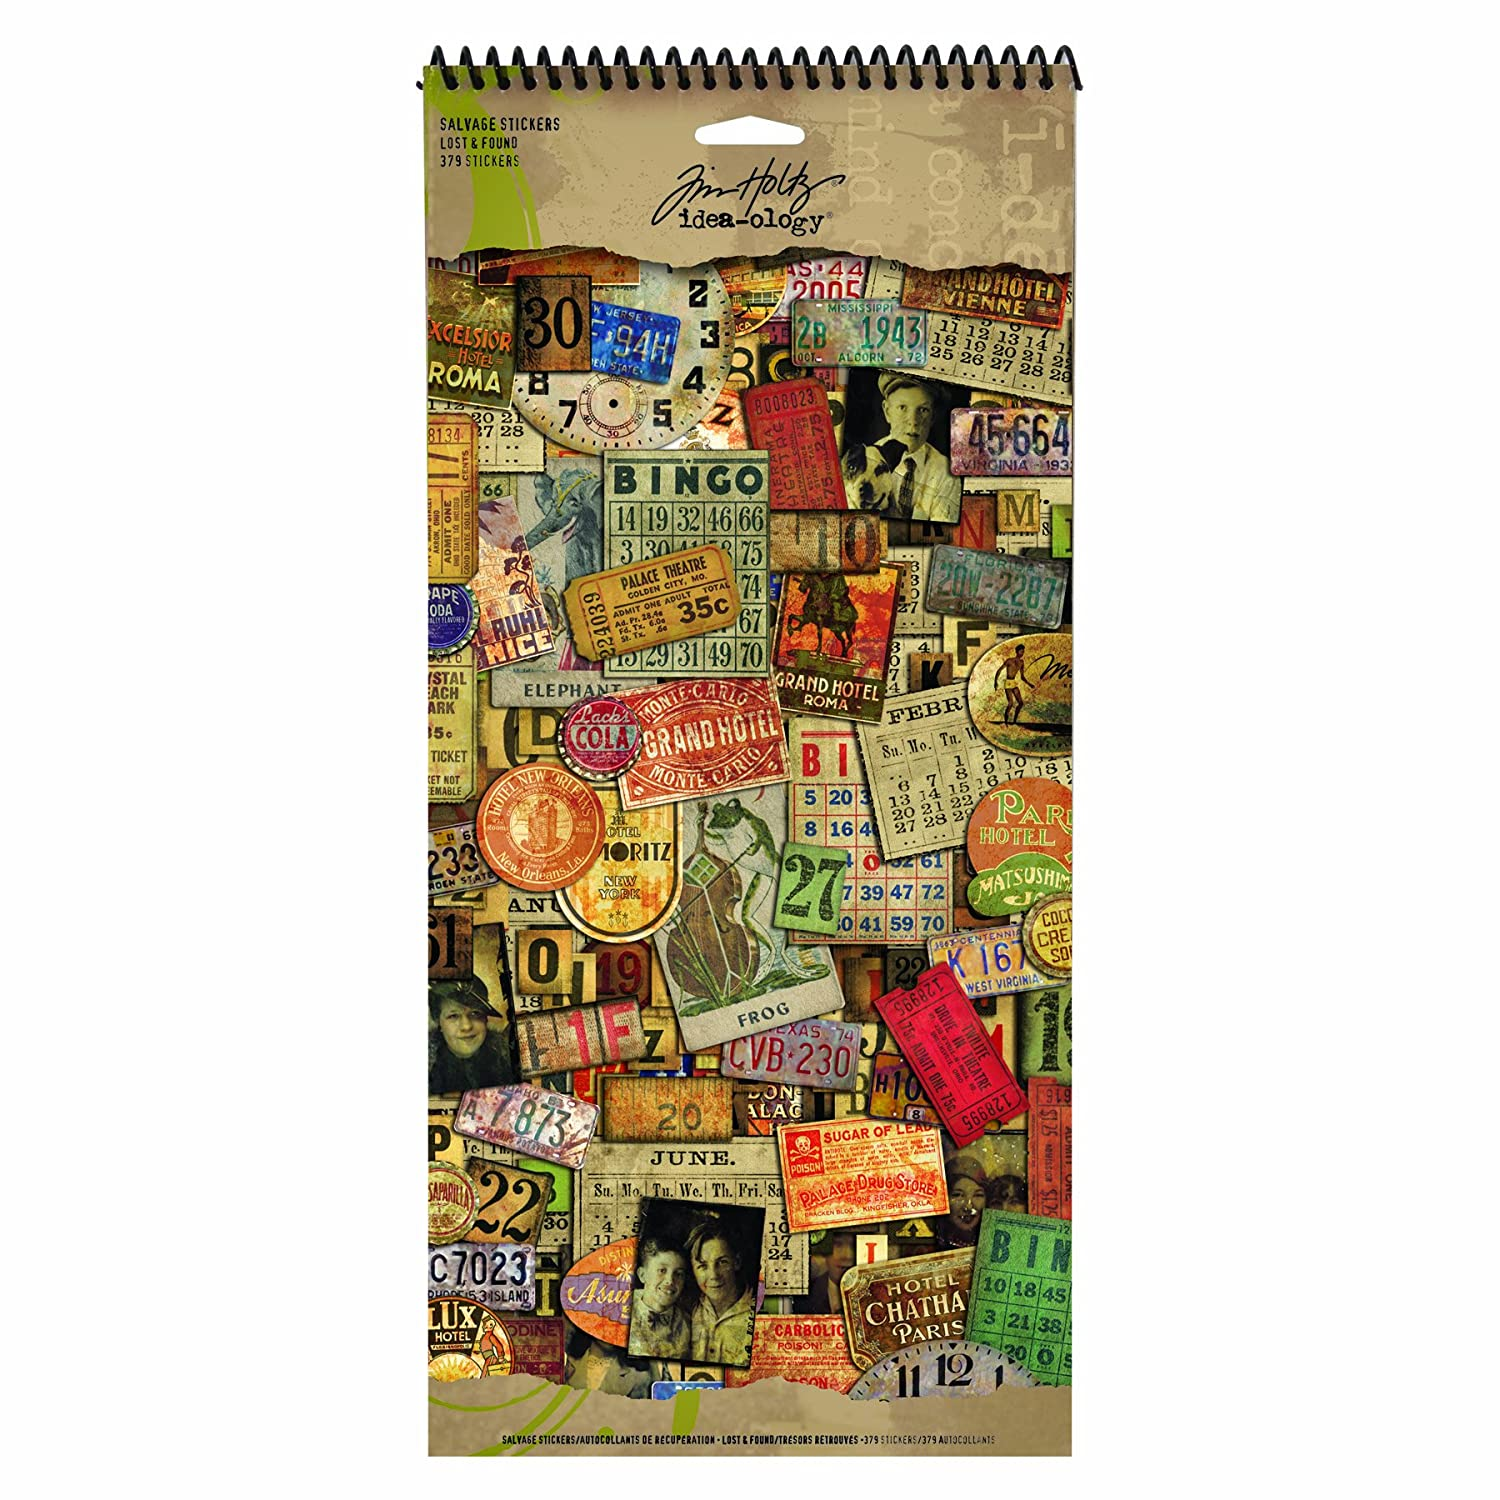 Lost and Found Salvage Stickers by Tim Holtz Idea-ology, 379 Stickers, Paper, Multicolored, TH92870